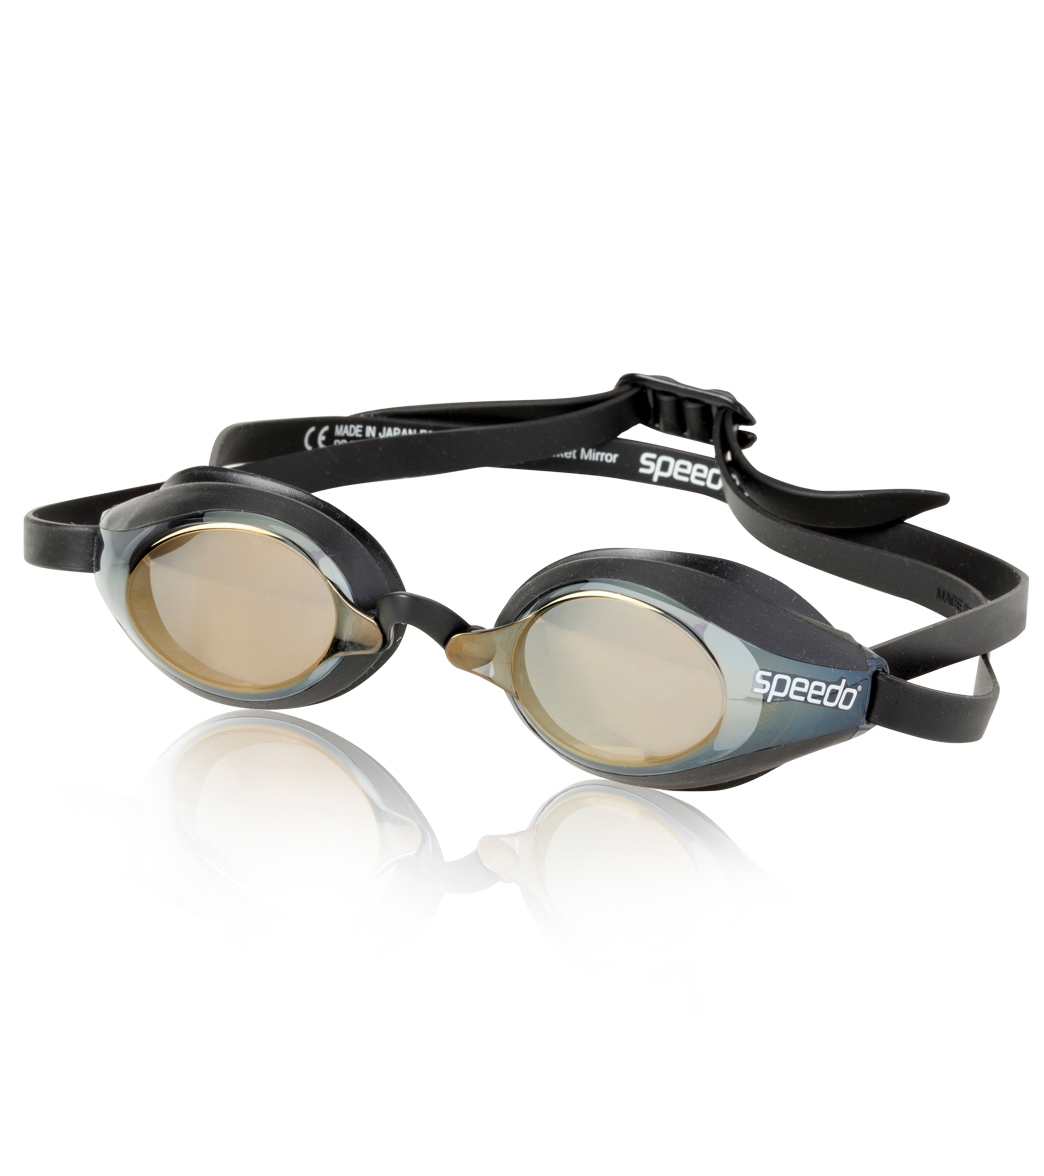 69236c197bde7 Speedo Speed Socket Mirrored Goggle at SwimOutlet.com